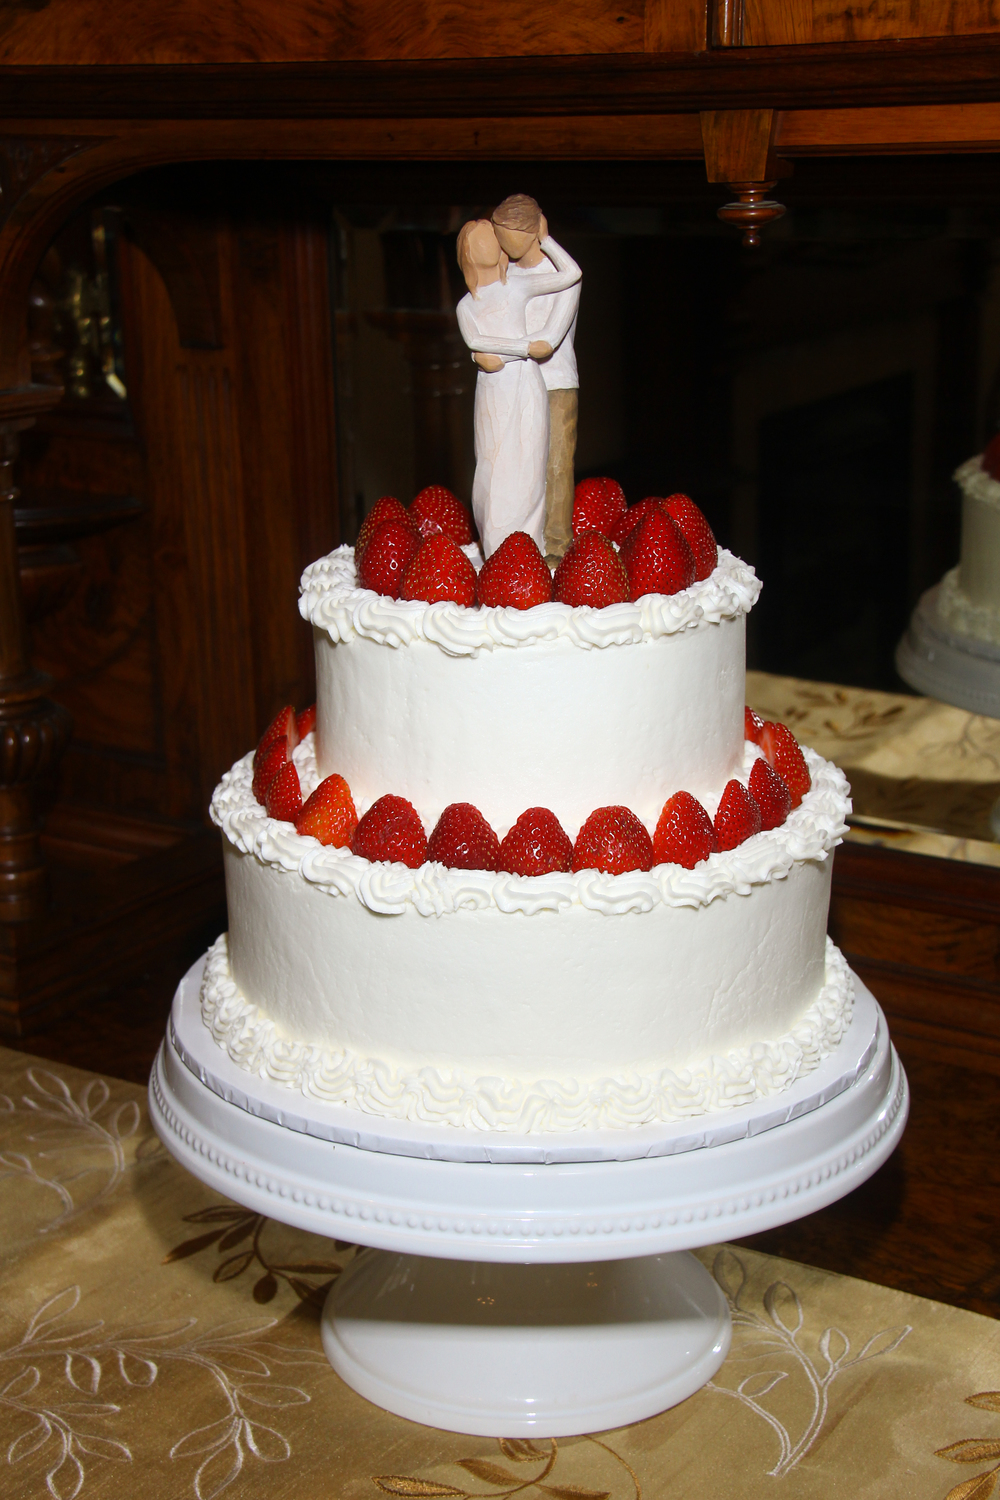 Savannah Georgia wedding cake with strawberries